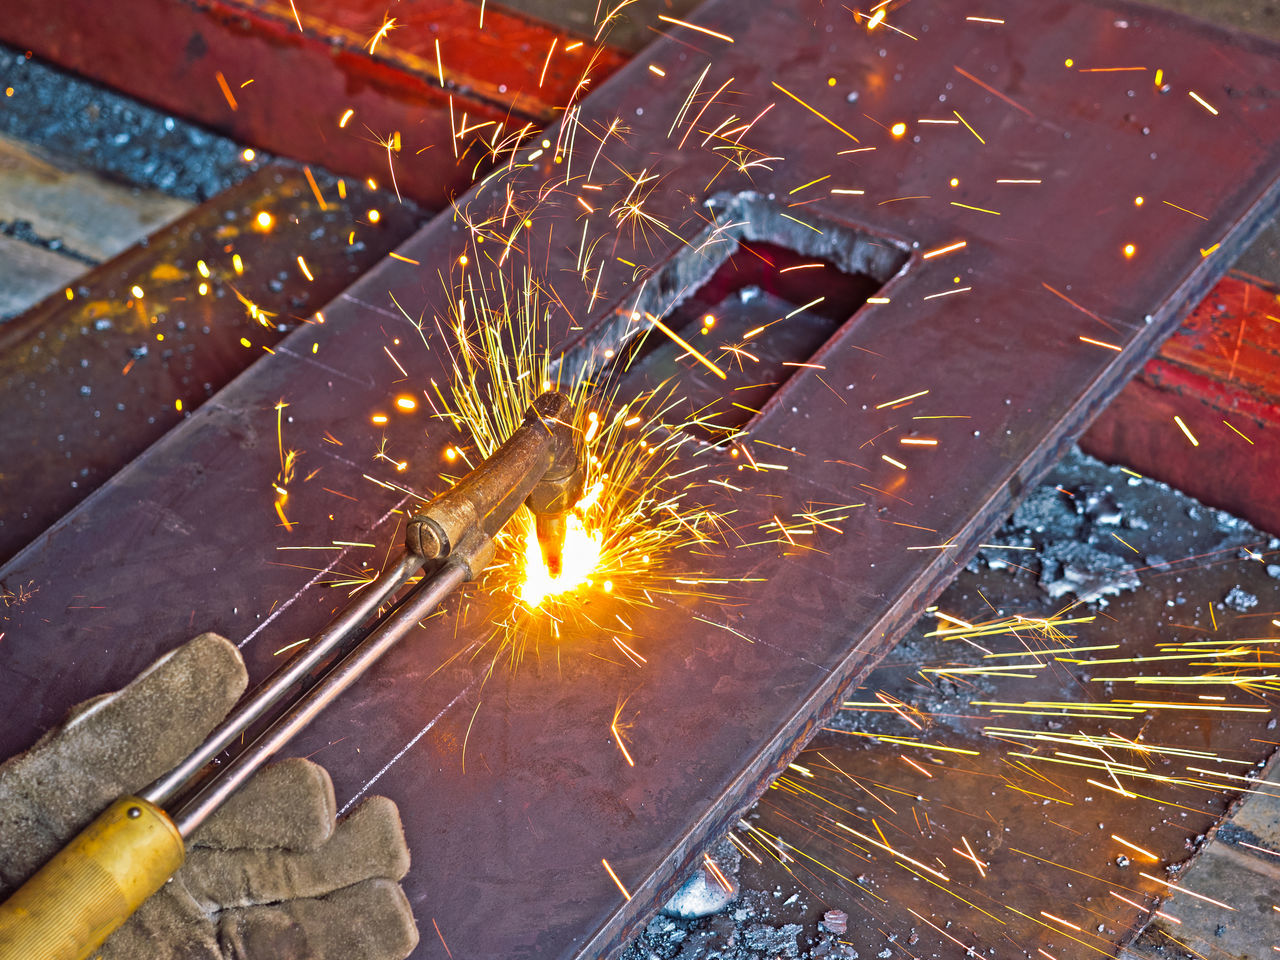 cutting Illuminated No People Torchgas torch Industry Metal Industry Outdoors Night Golf Club Close-up Gas metal Iron - Metal Hot Cutter Metal Work Hot Work Oxygen Plate